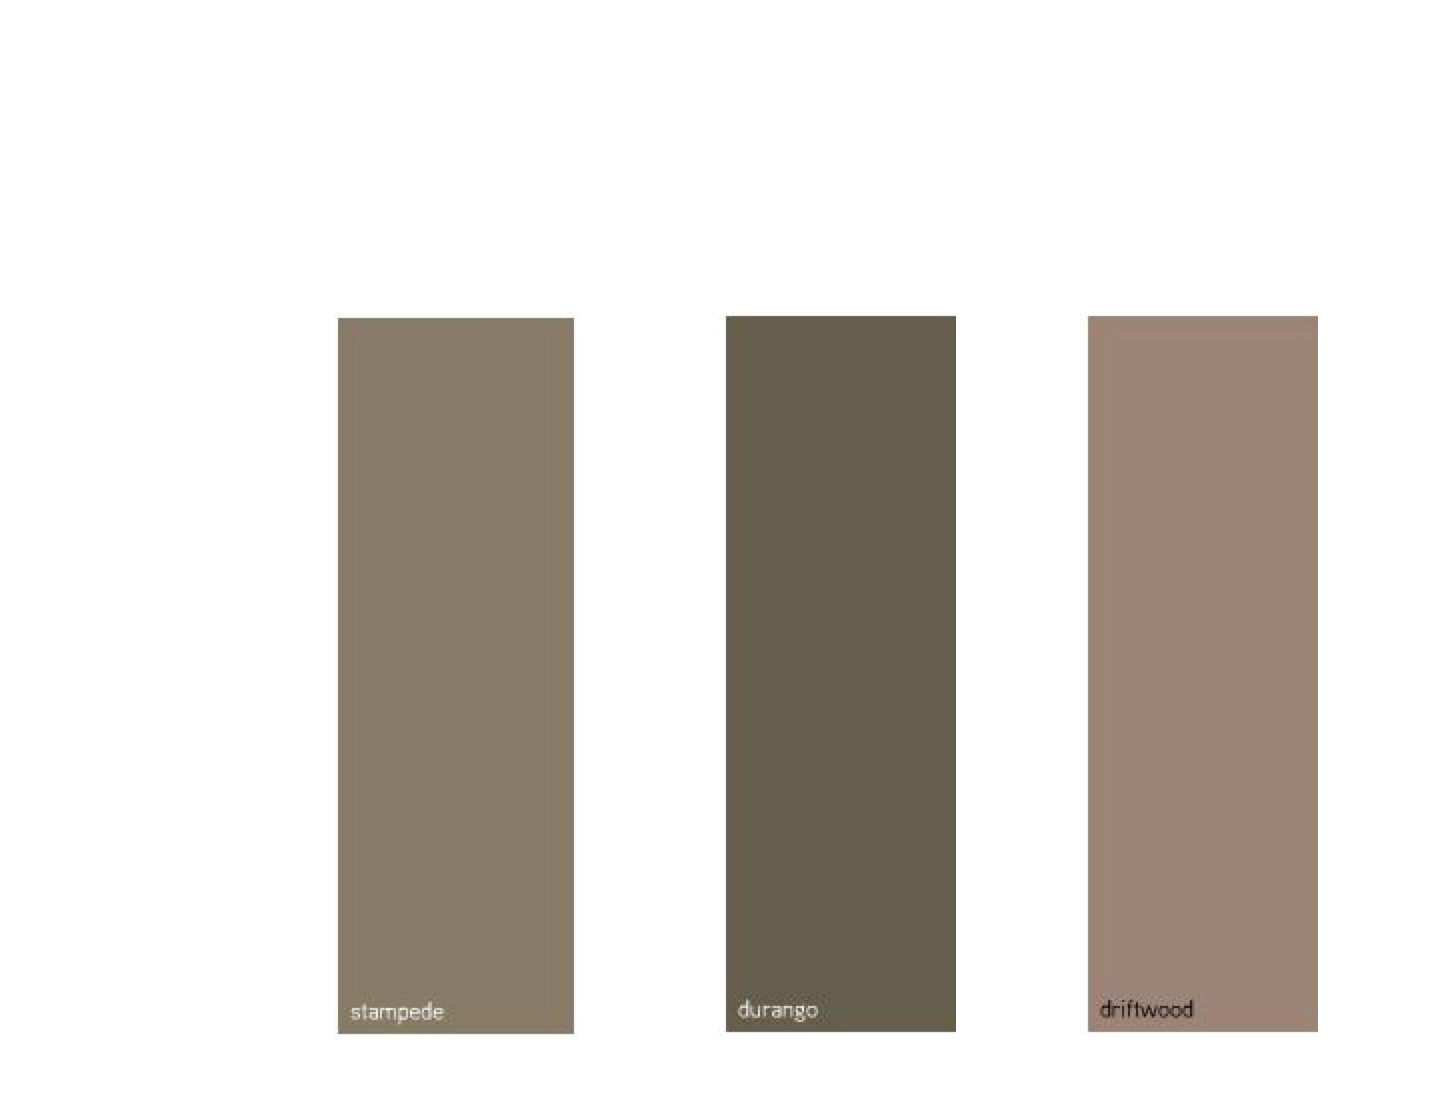 Creed art gallery inspiration for Color taupe